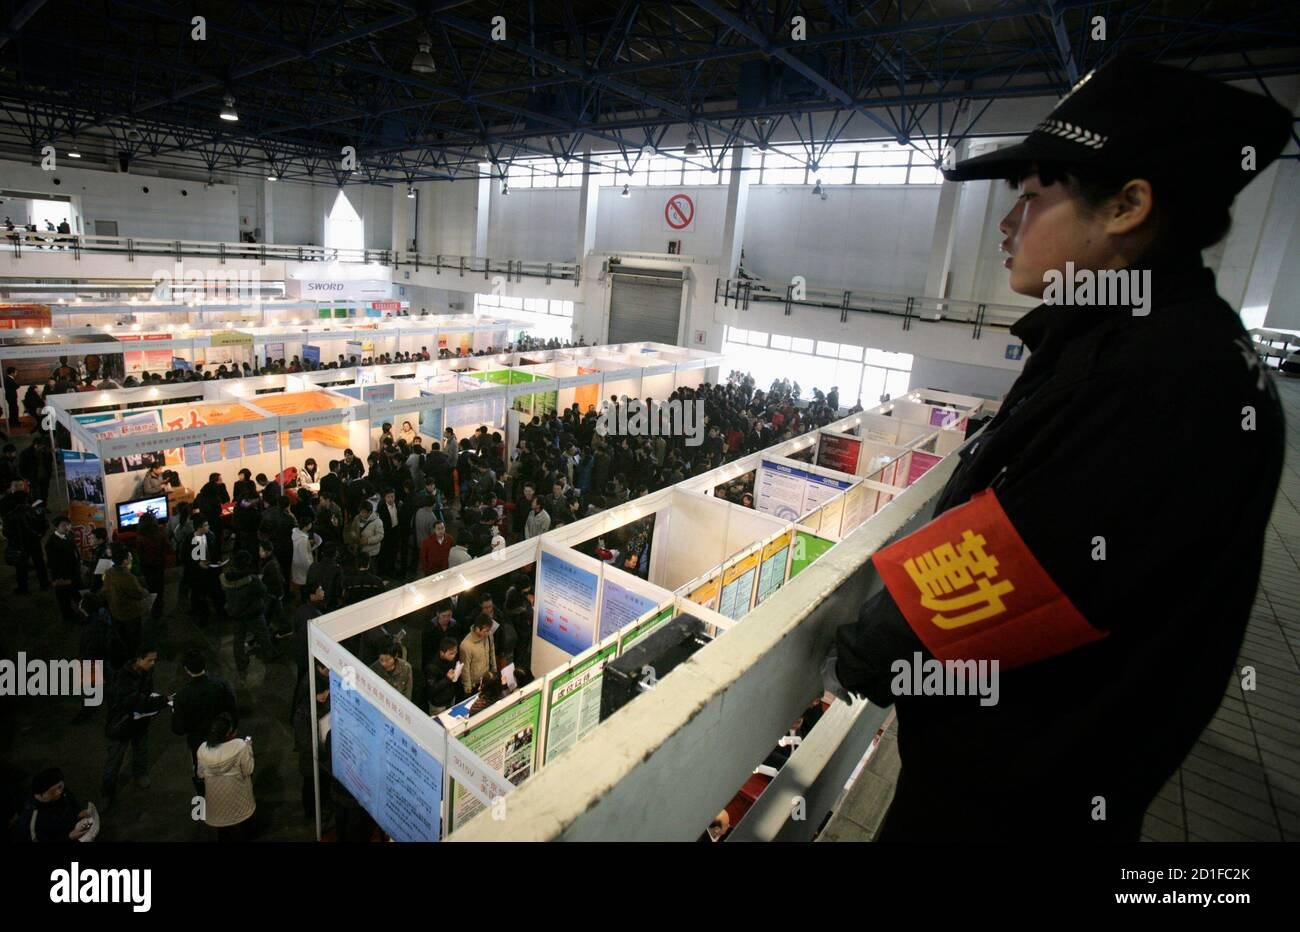 A security woman keeps order at a job fair in Beijing February 14, 2009. China must push job creation as an even higher priority in setting economic policy, the government said on Tuesday, laying down rules for employers and officials to discourage potentially volatile sackings. REUTERS/Grace Liang (CHINA) Stock Photo